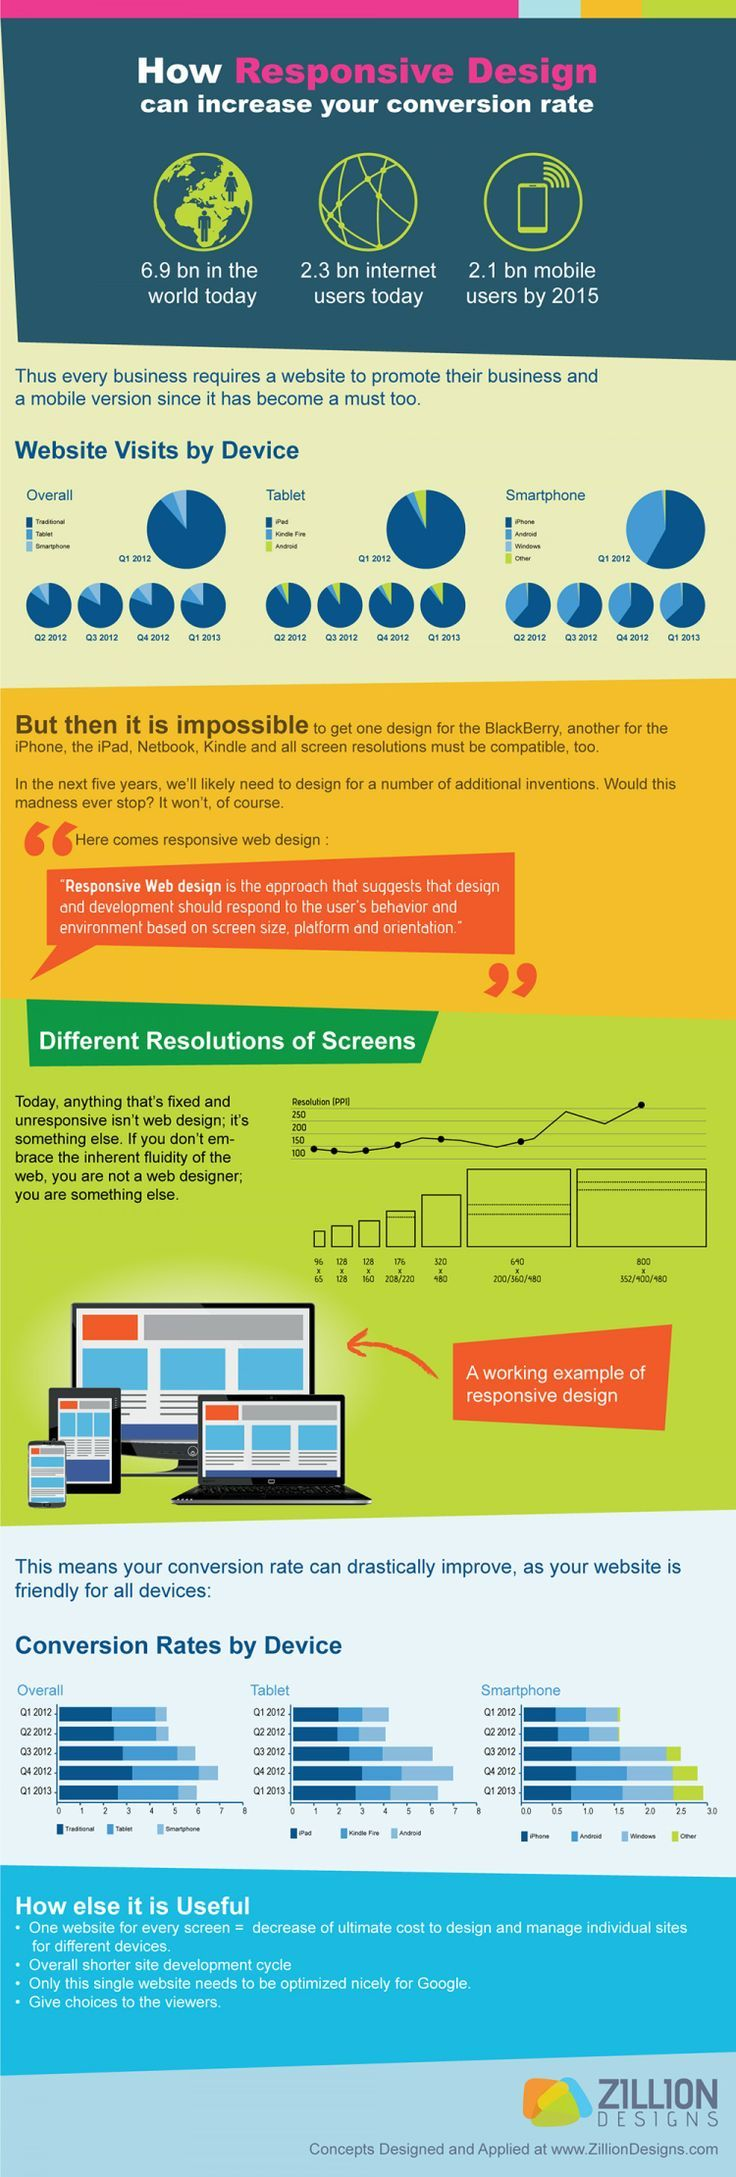 How #ResponsiveDesign Can Increase Your Conversion Rate | Propel Marketing